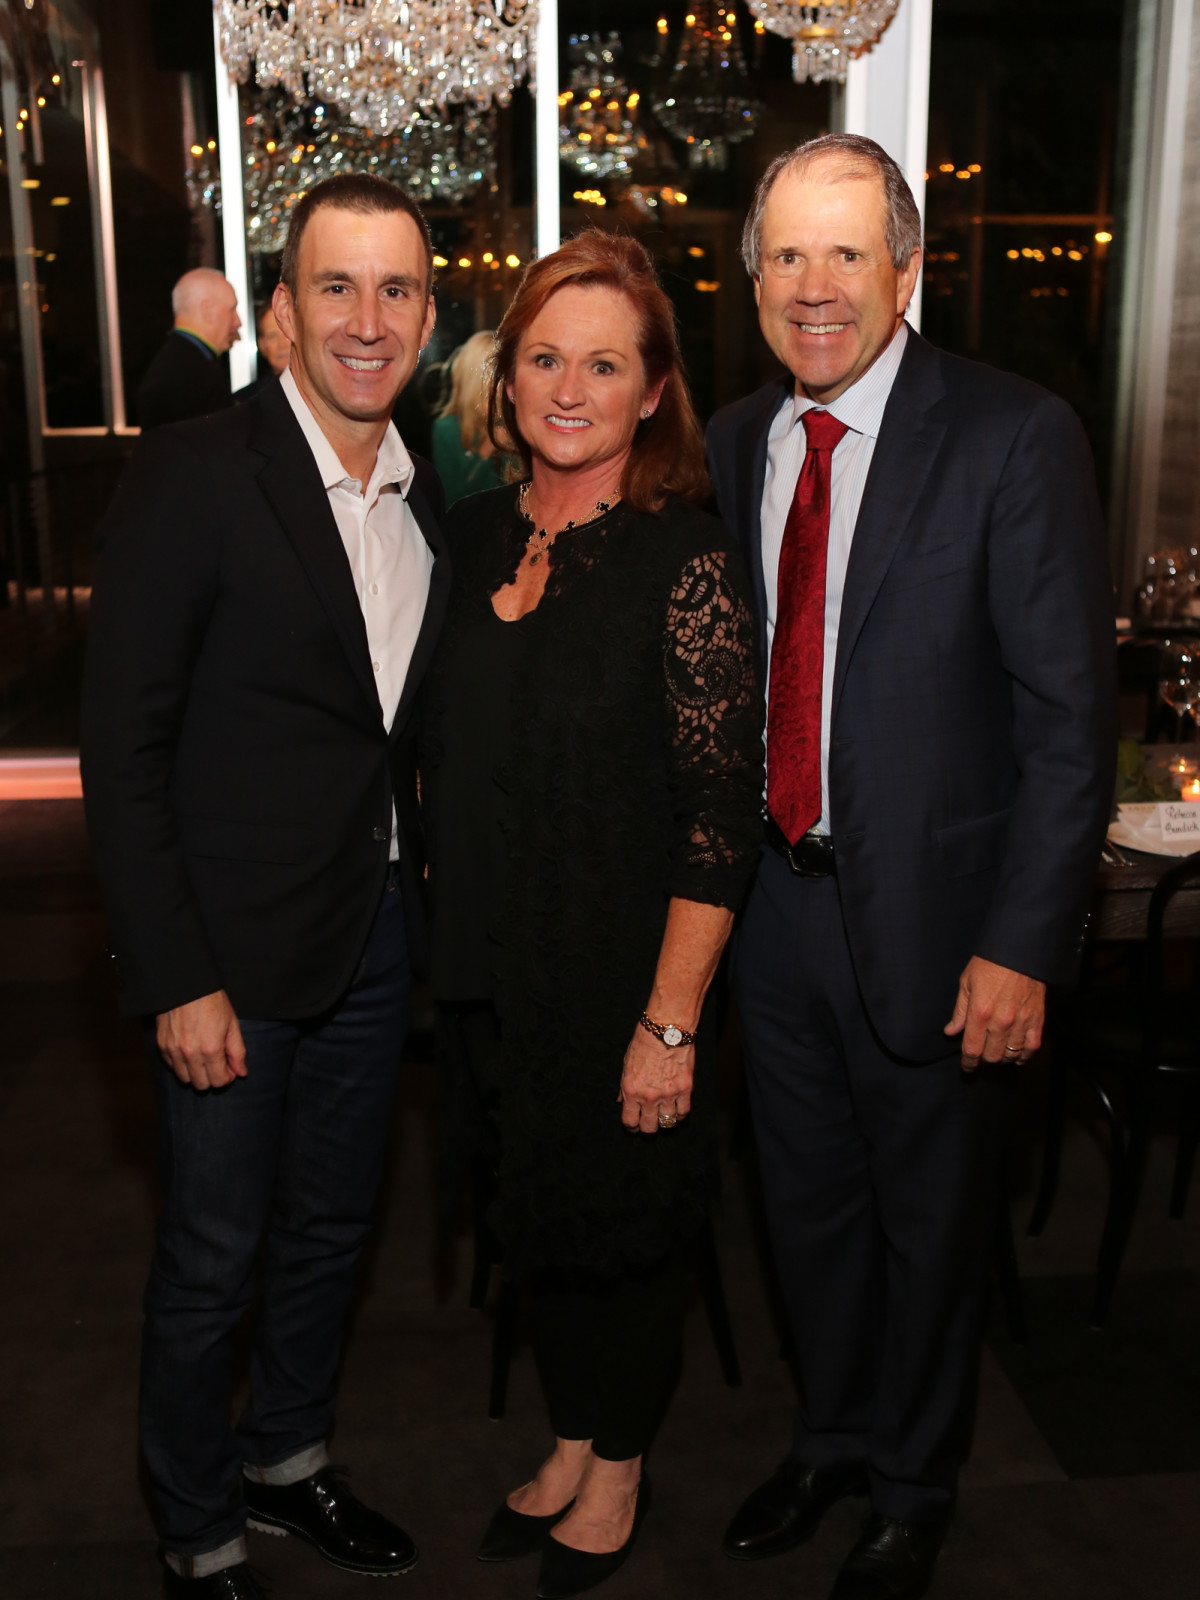 News, Equinox Opening Dinner, Dec. 2015, Harvey Spevak, Mo Campo, Ric Campo